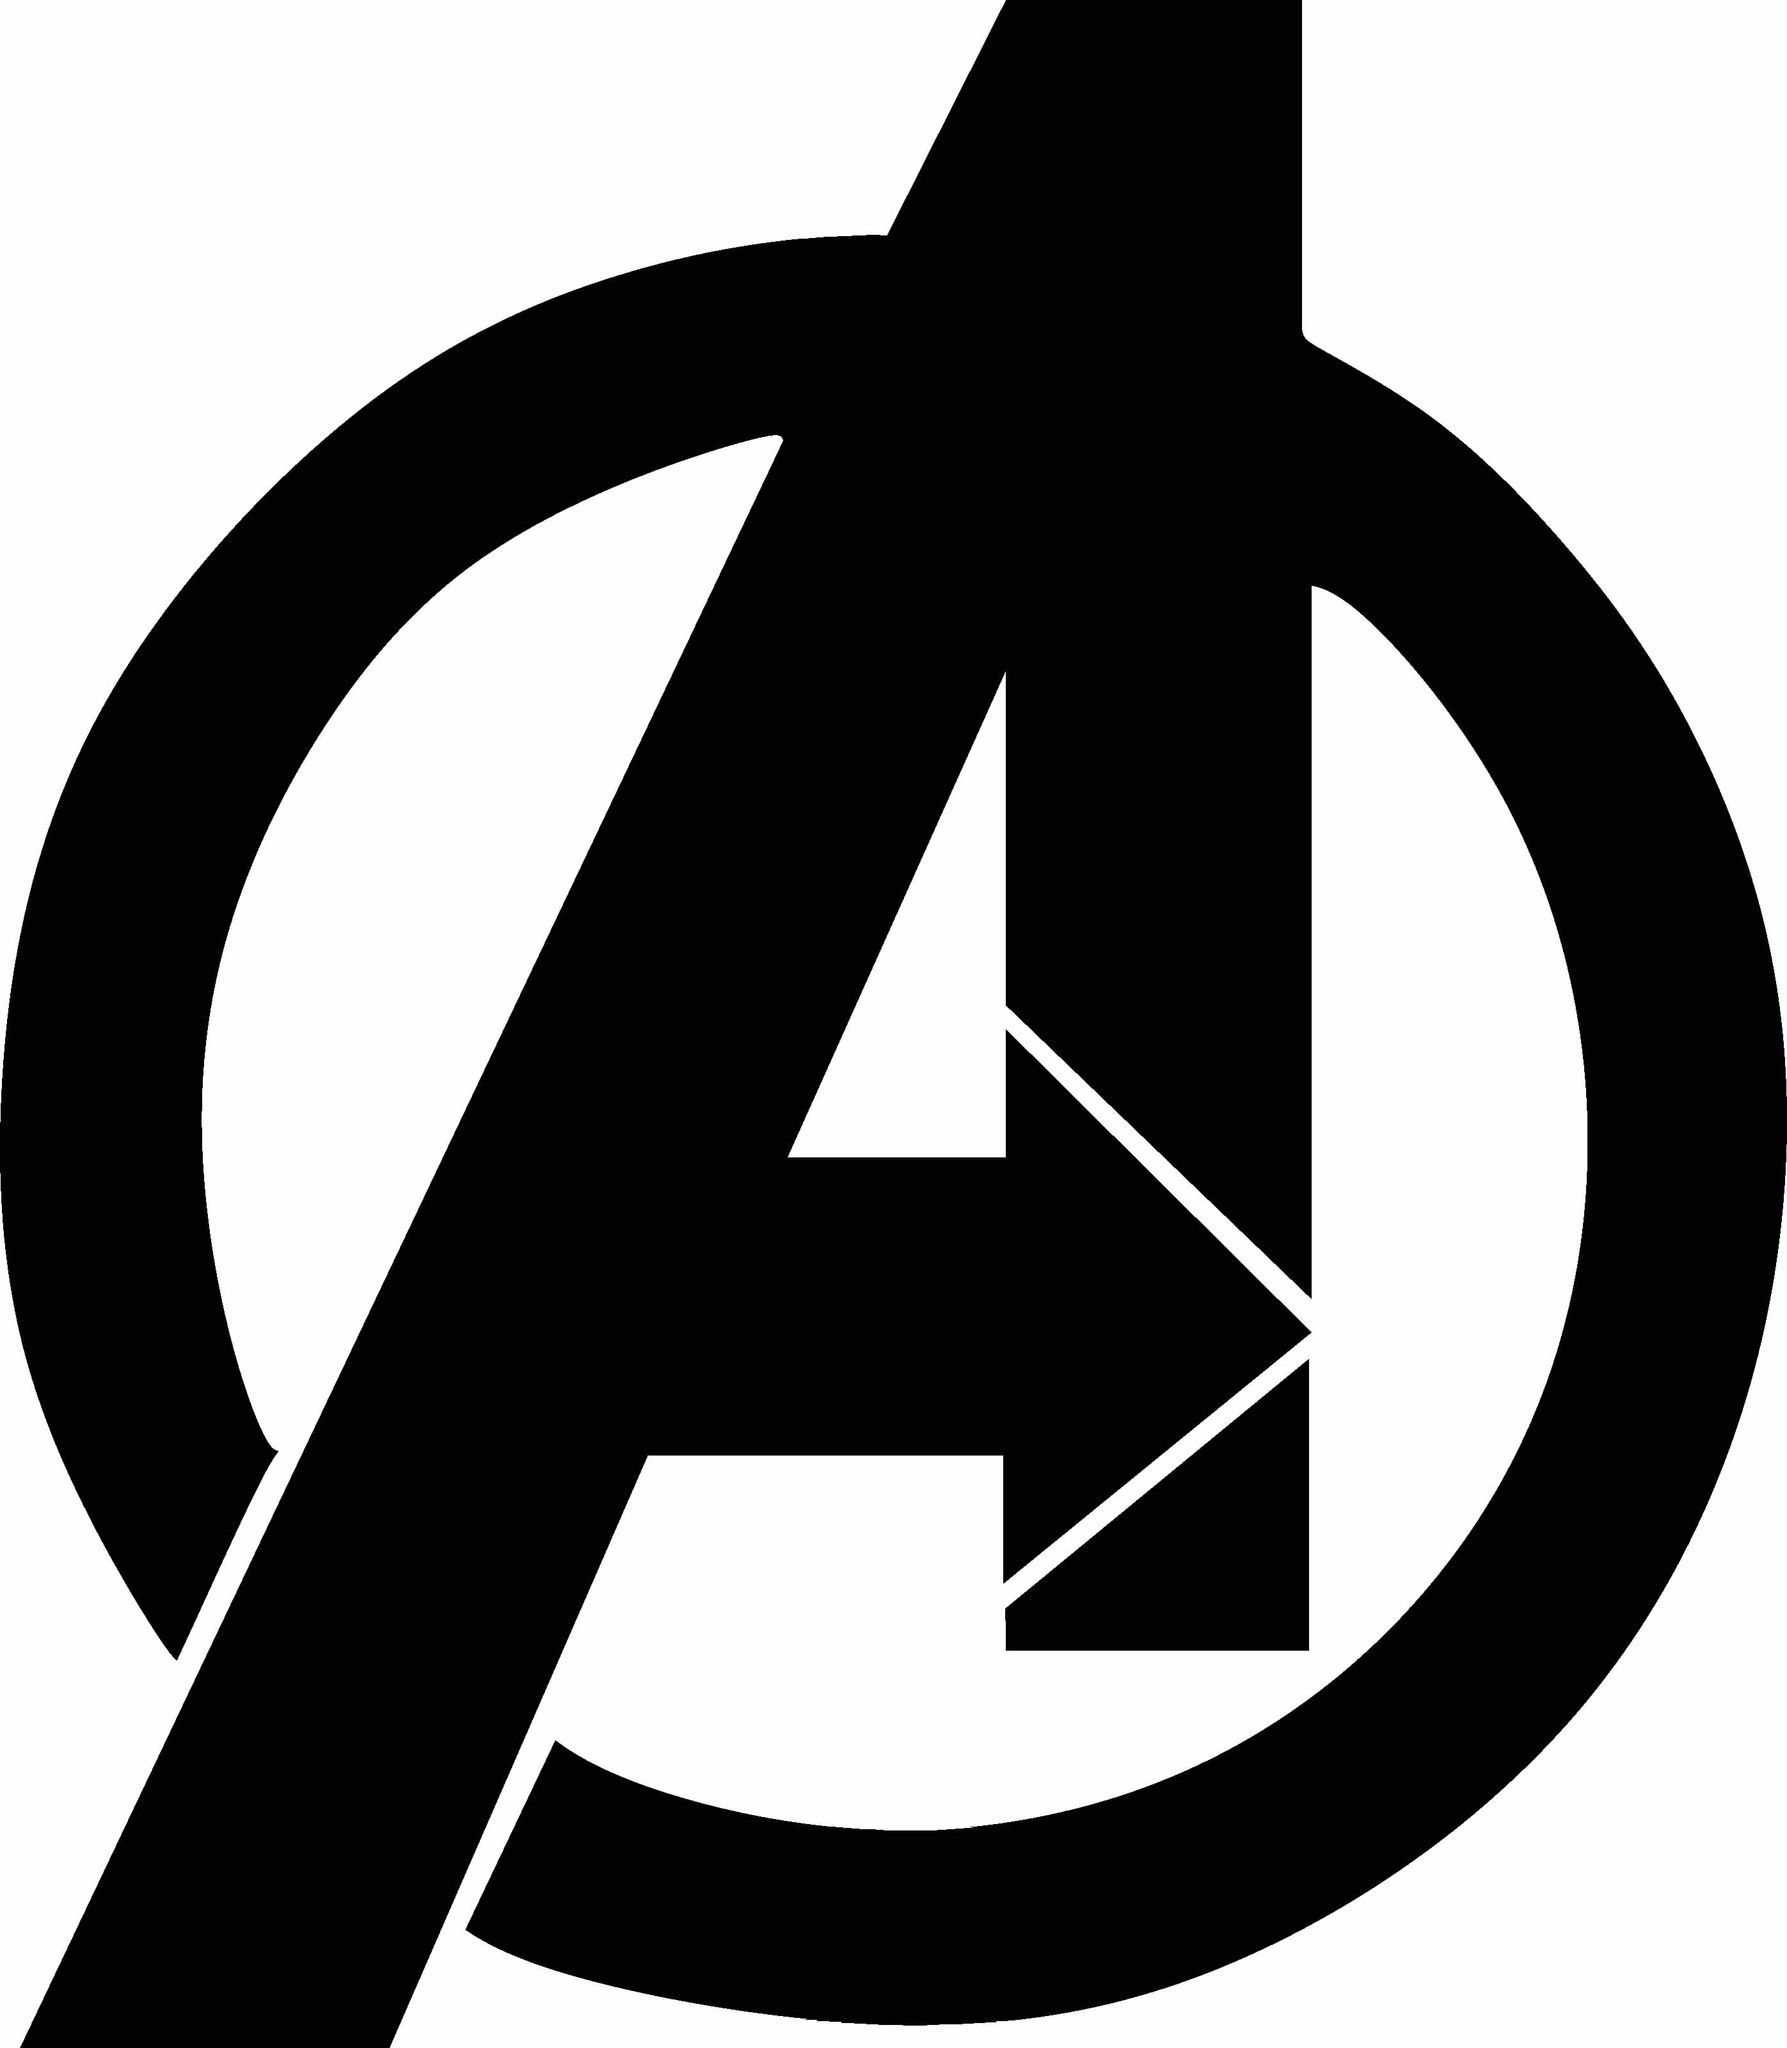 Avengers Logo Vinyl Decal Graphic - Choose your Color and Size ...